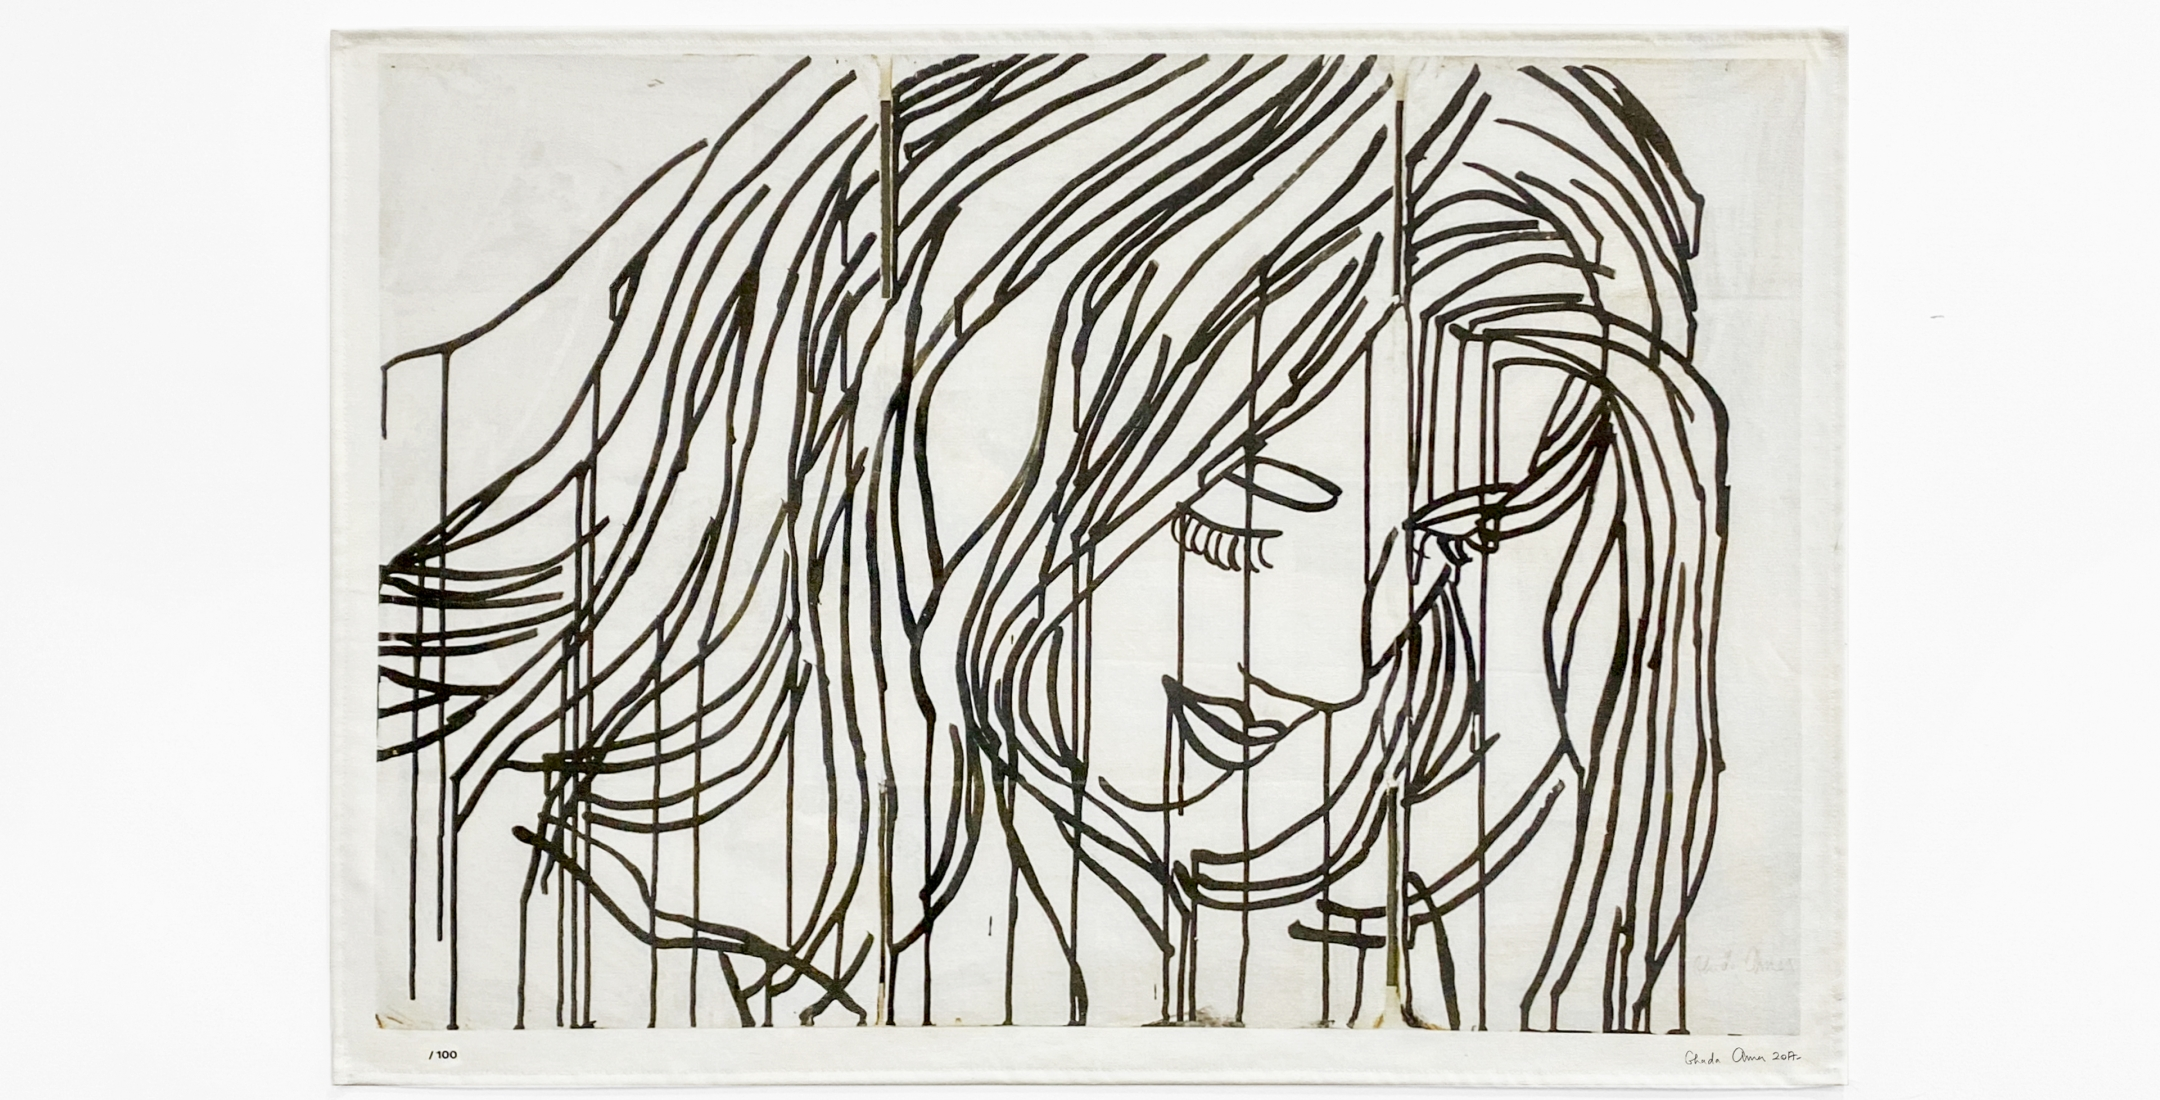 Tina Kim Gallery Presents: Art Without Borders; Ghada Amer, Untitled (based on Study for the Red Portrait, 2017), 2020